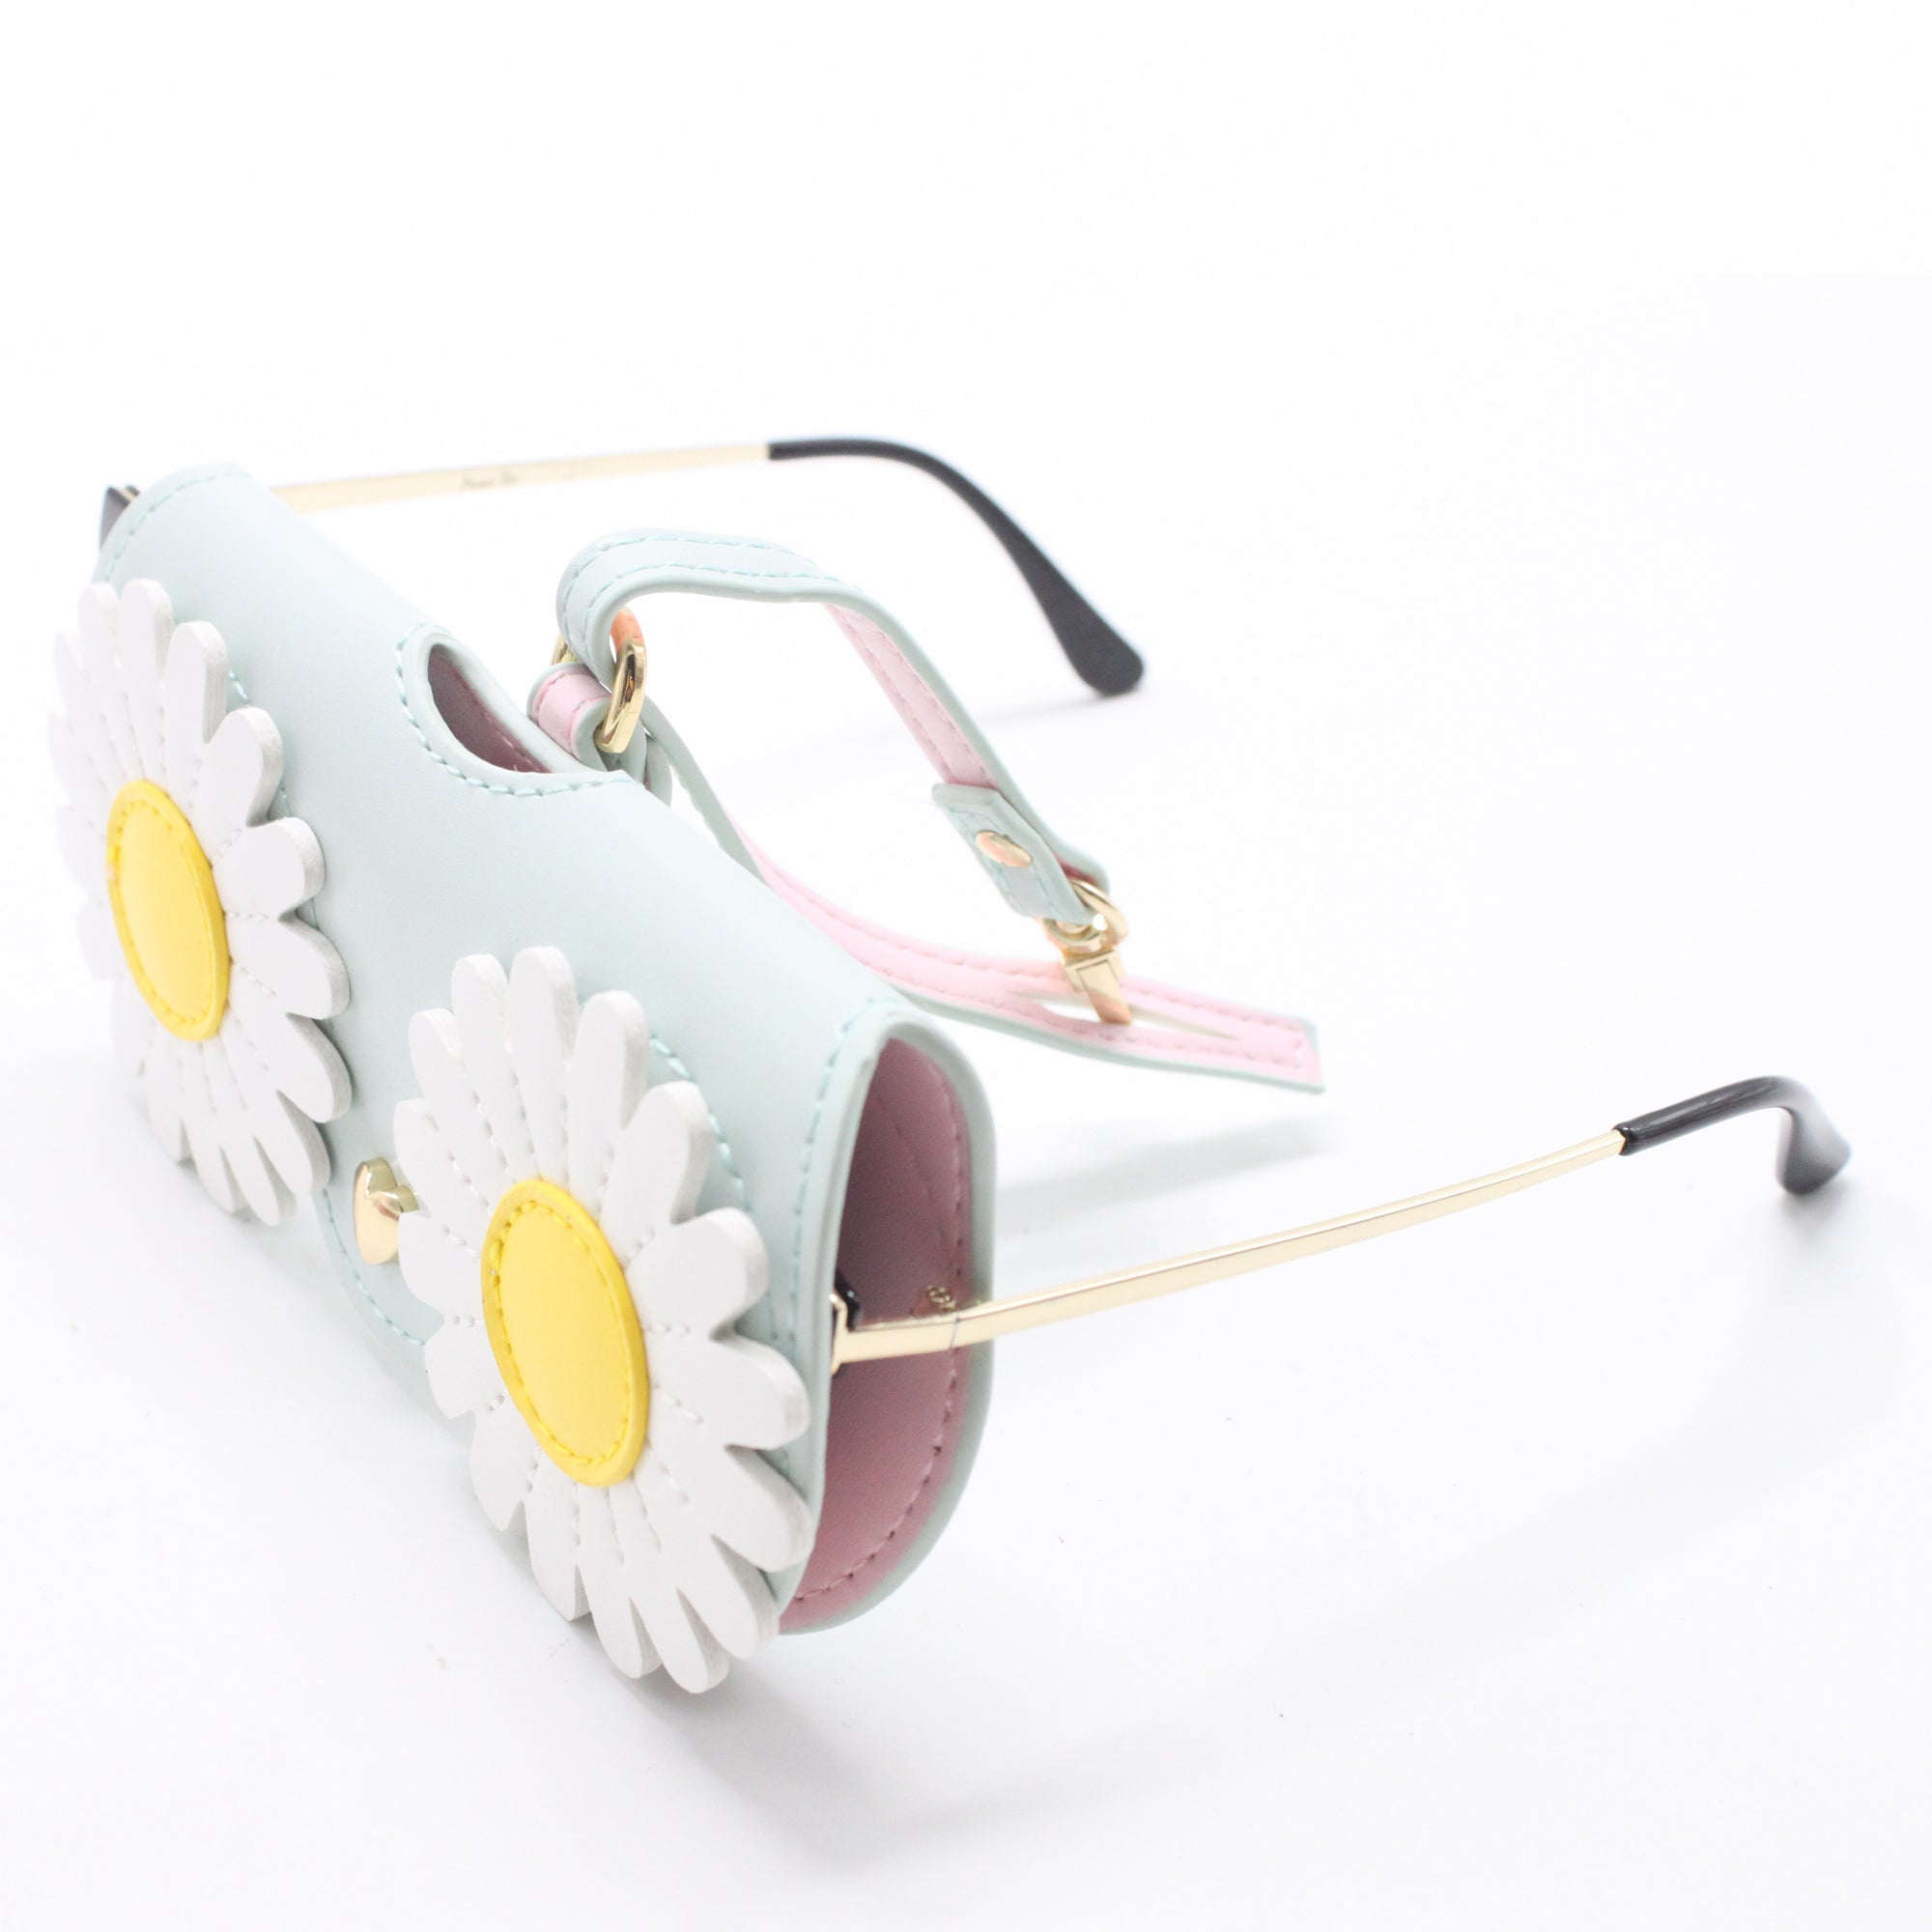 Glasses Case with Bag Holder – Daisy